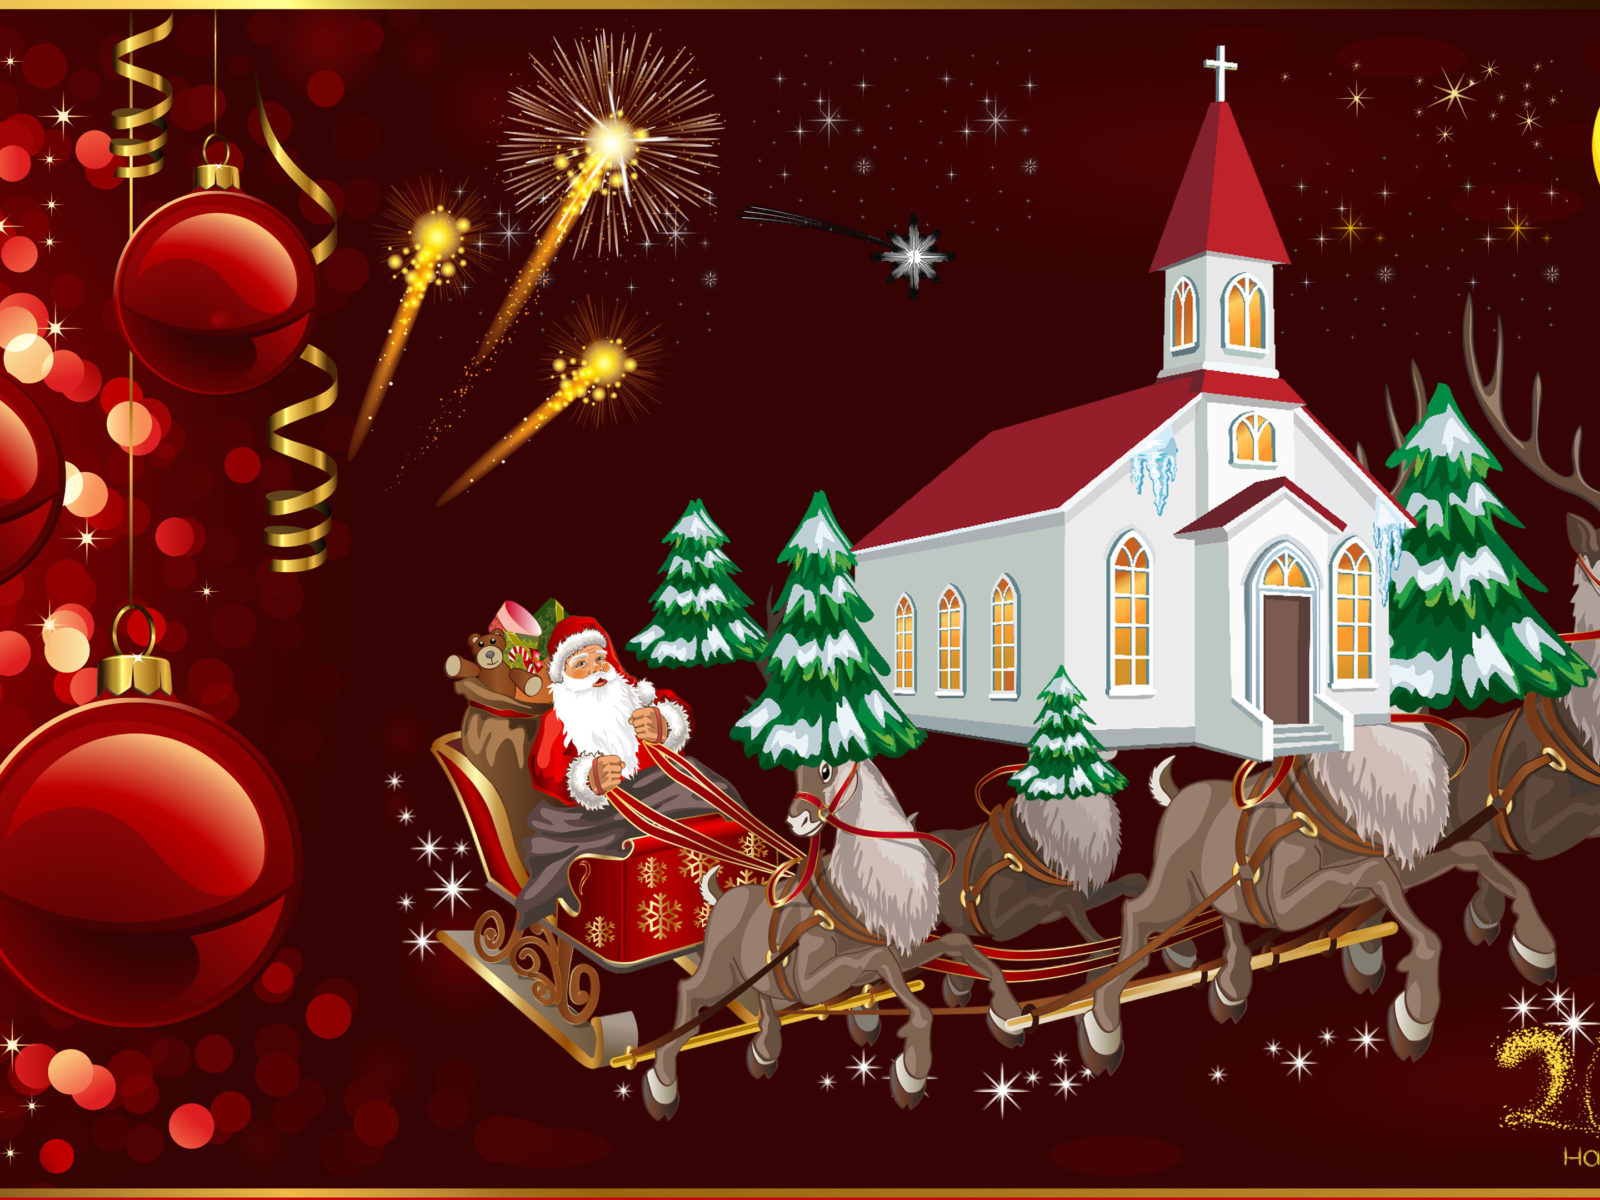 Happy New Year 2020 Merry Christmas Christmas Greeting Card Santa 1600x1200